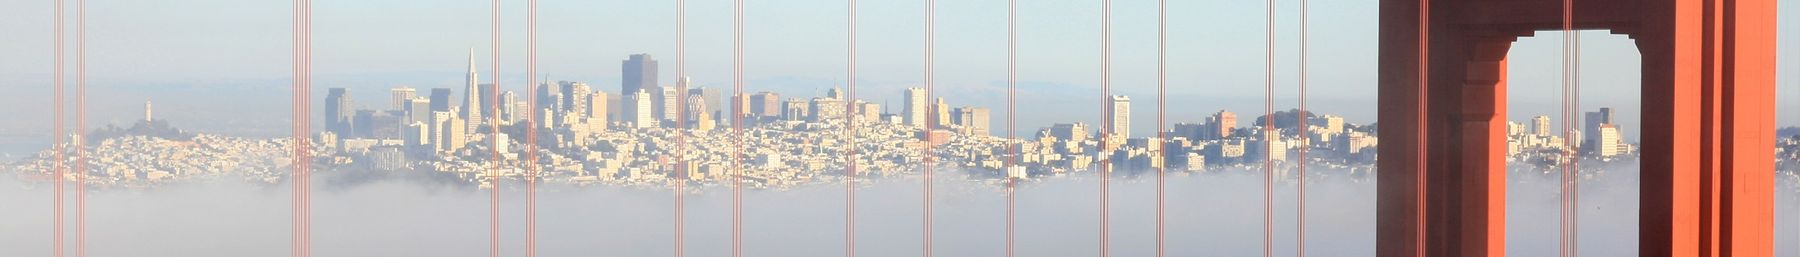 San Francisco viewed through the Golden Gate Bridge